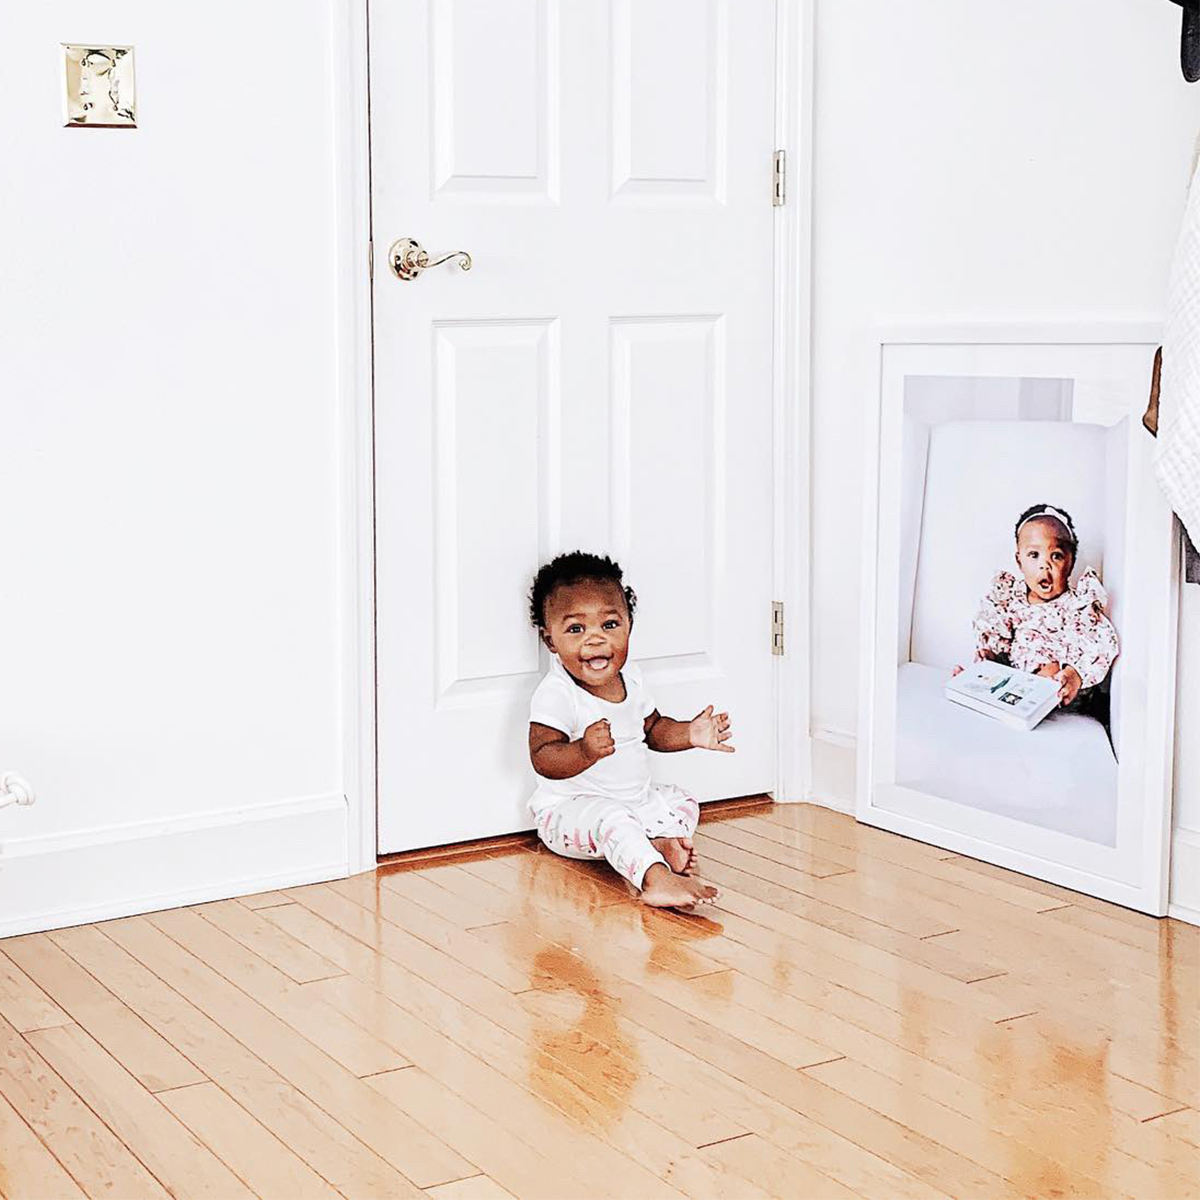 Baby sitting in front of enlarge photo of self resting on ground